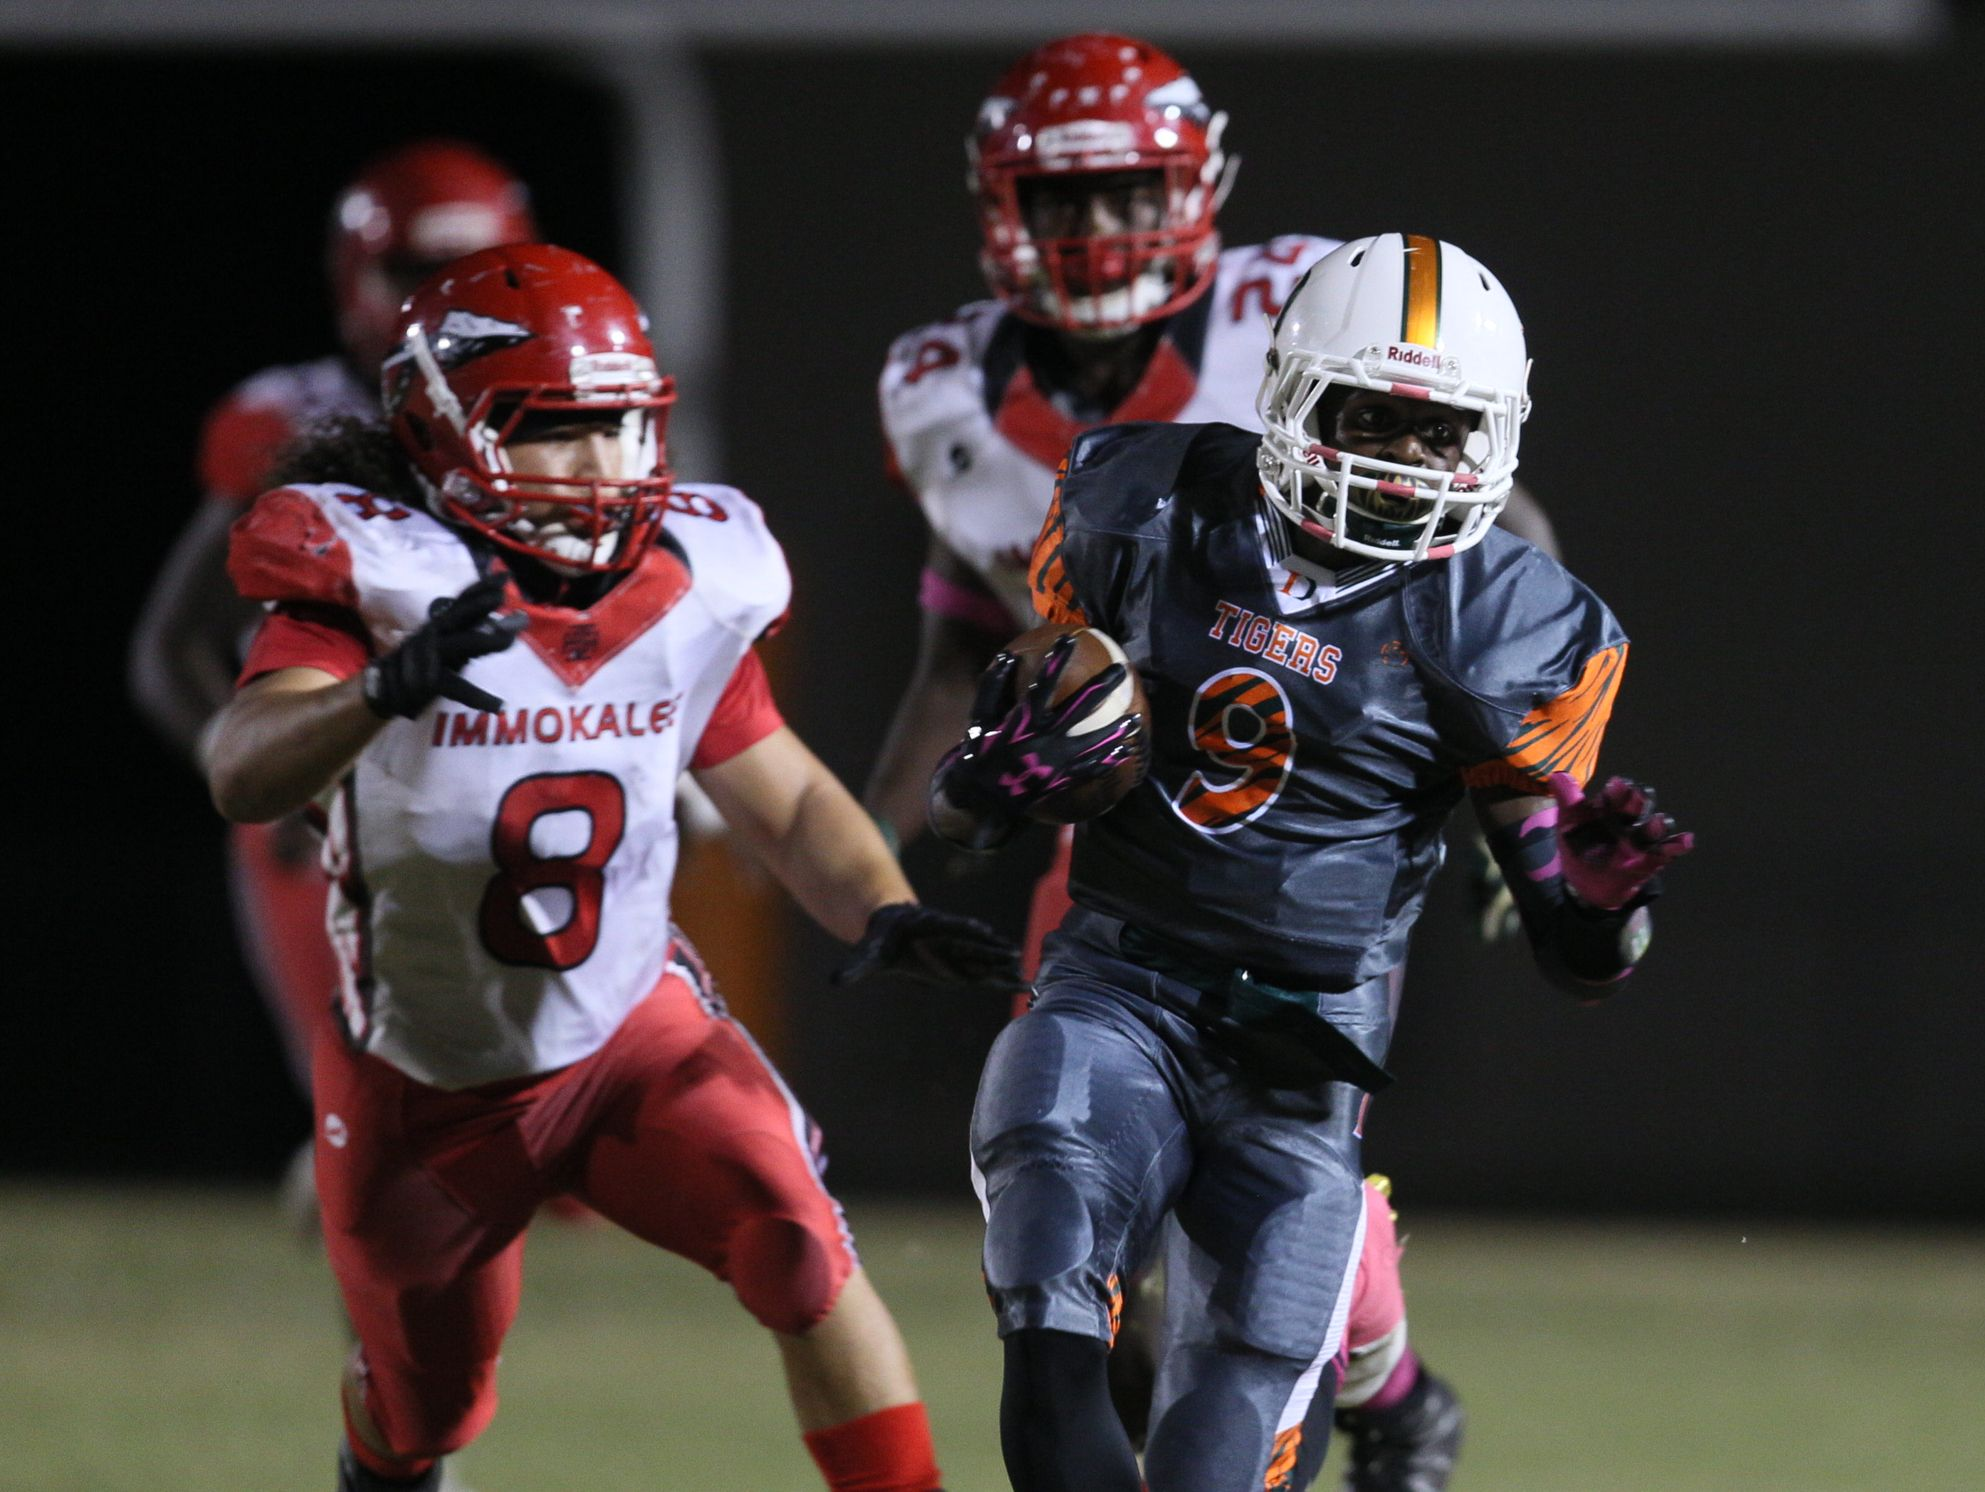 Dunbar, which sits at No. 3 in the Fab 5, travels to Mariner this week.